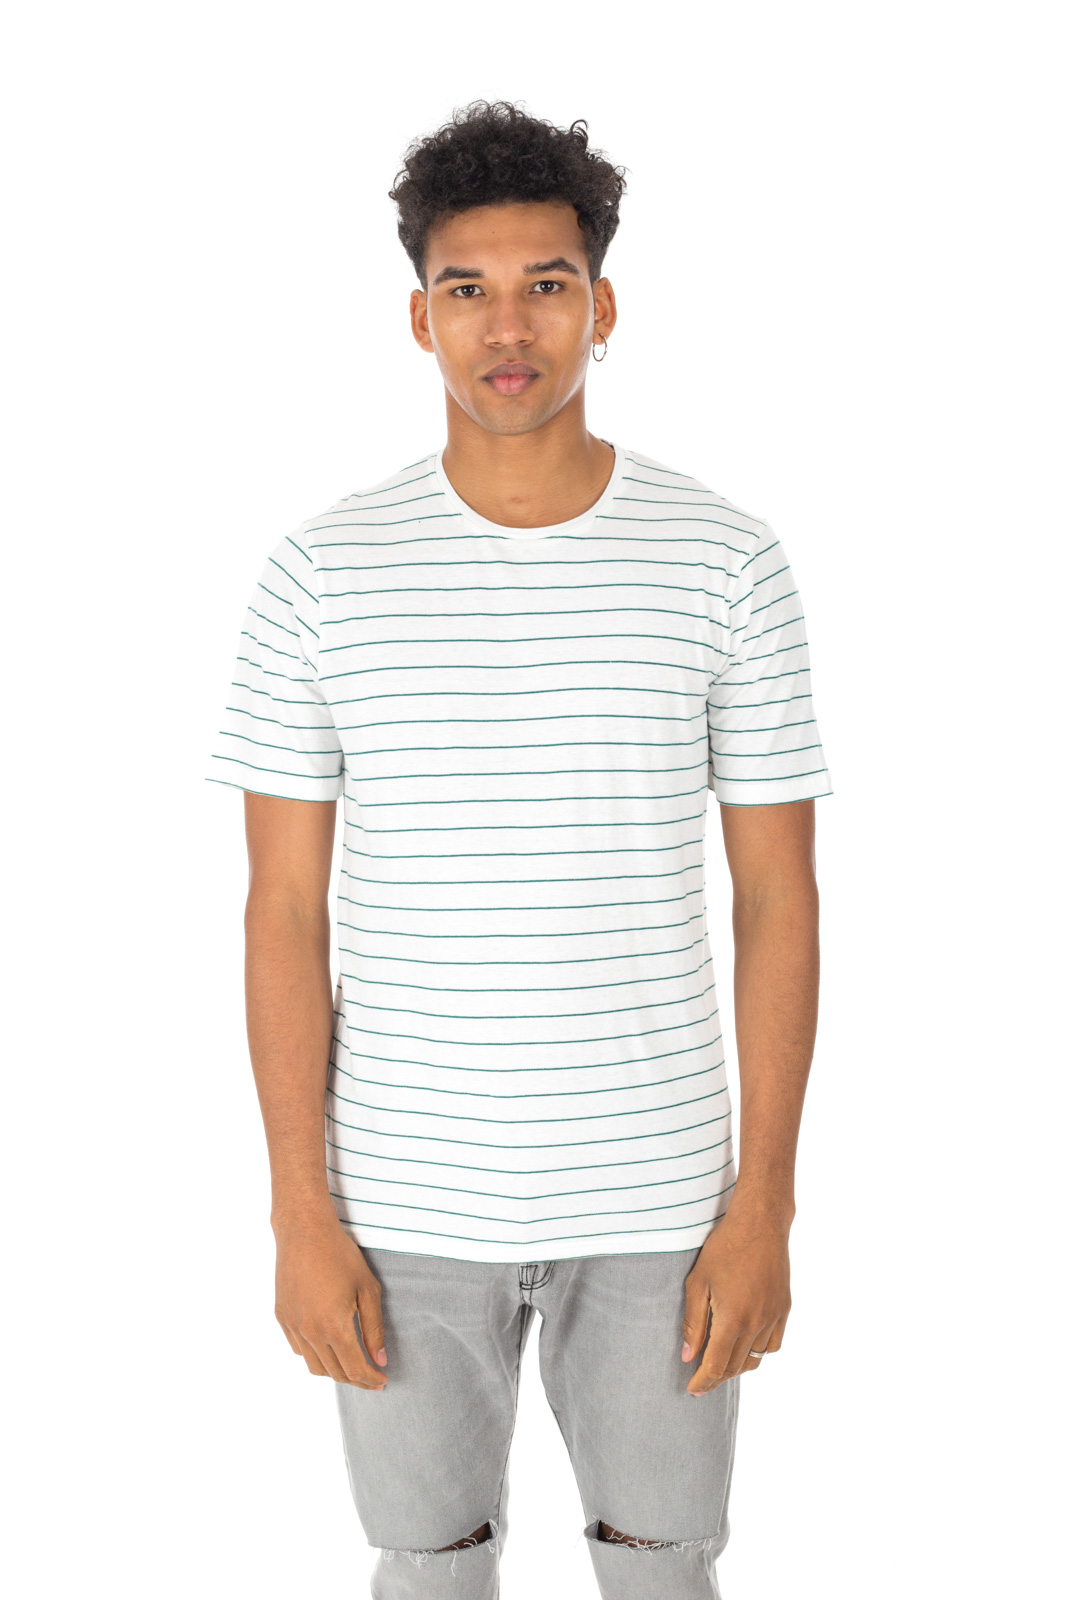 Minimum - Tatipu white / green striped T-shirt